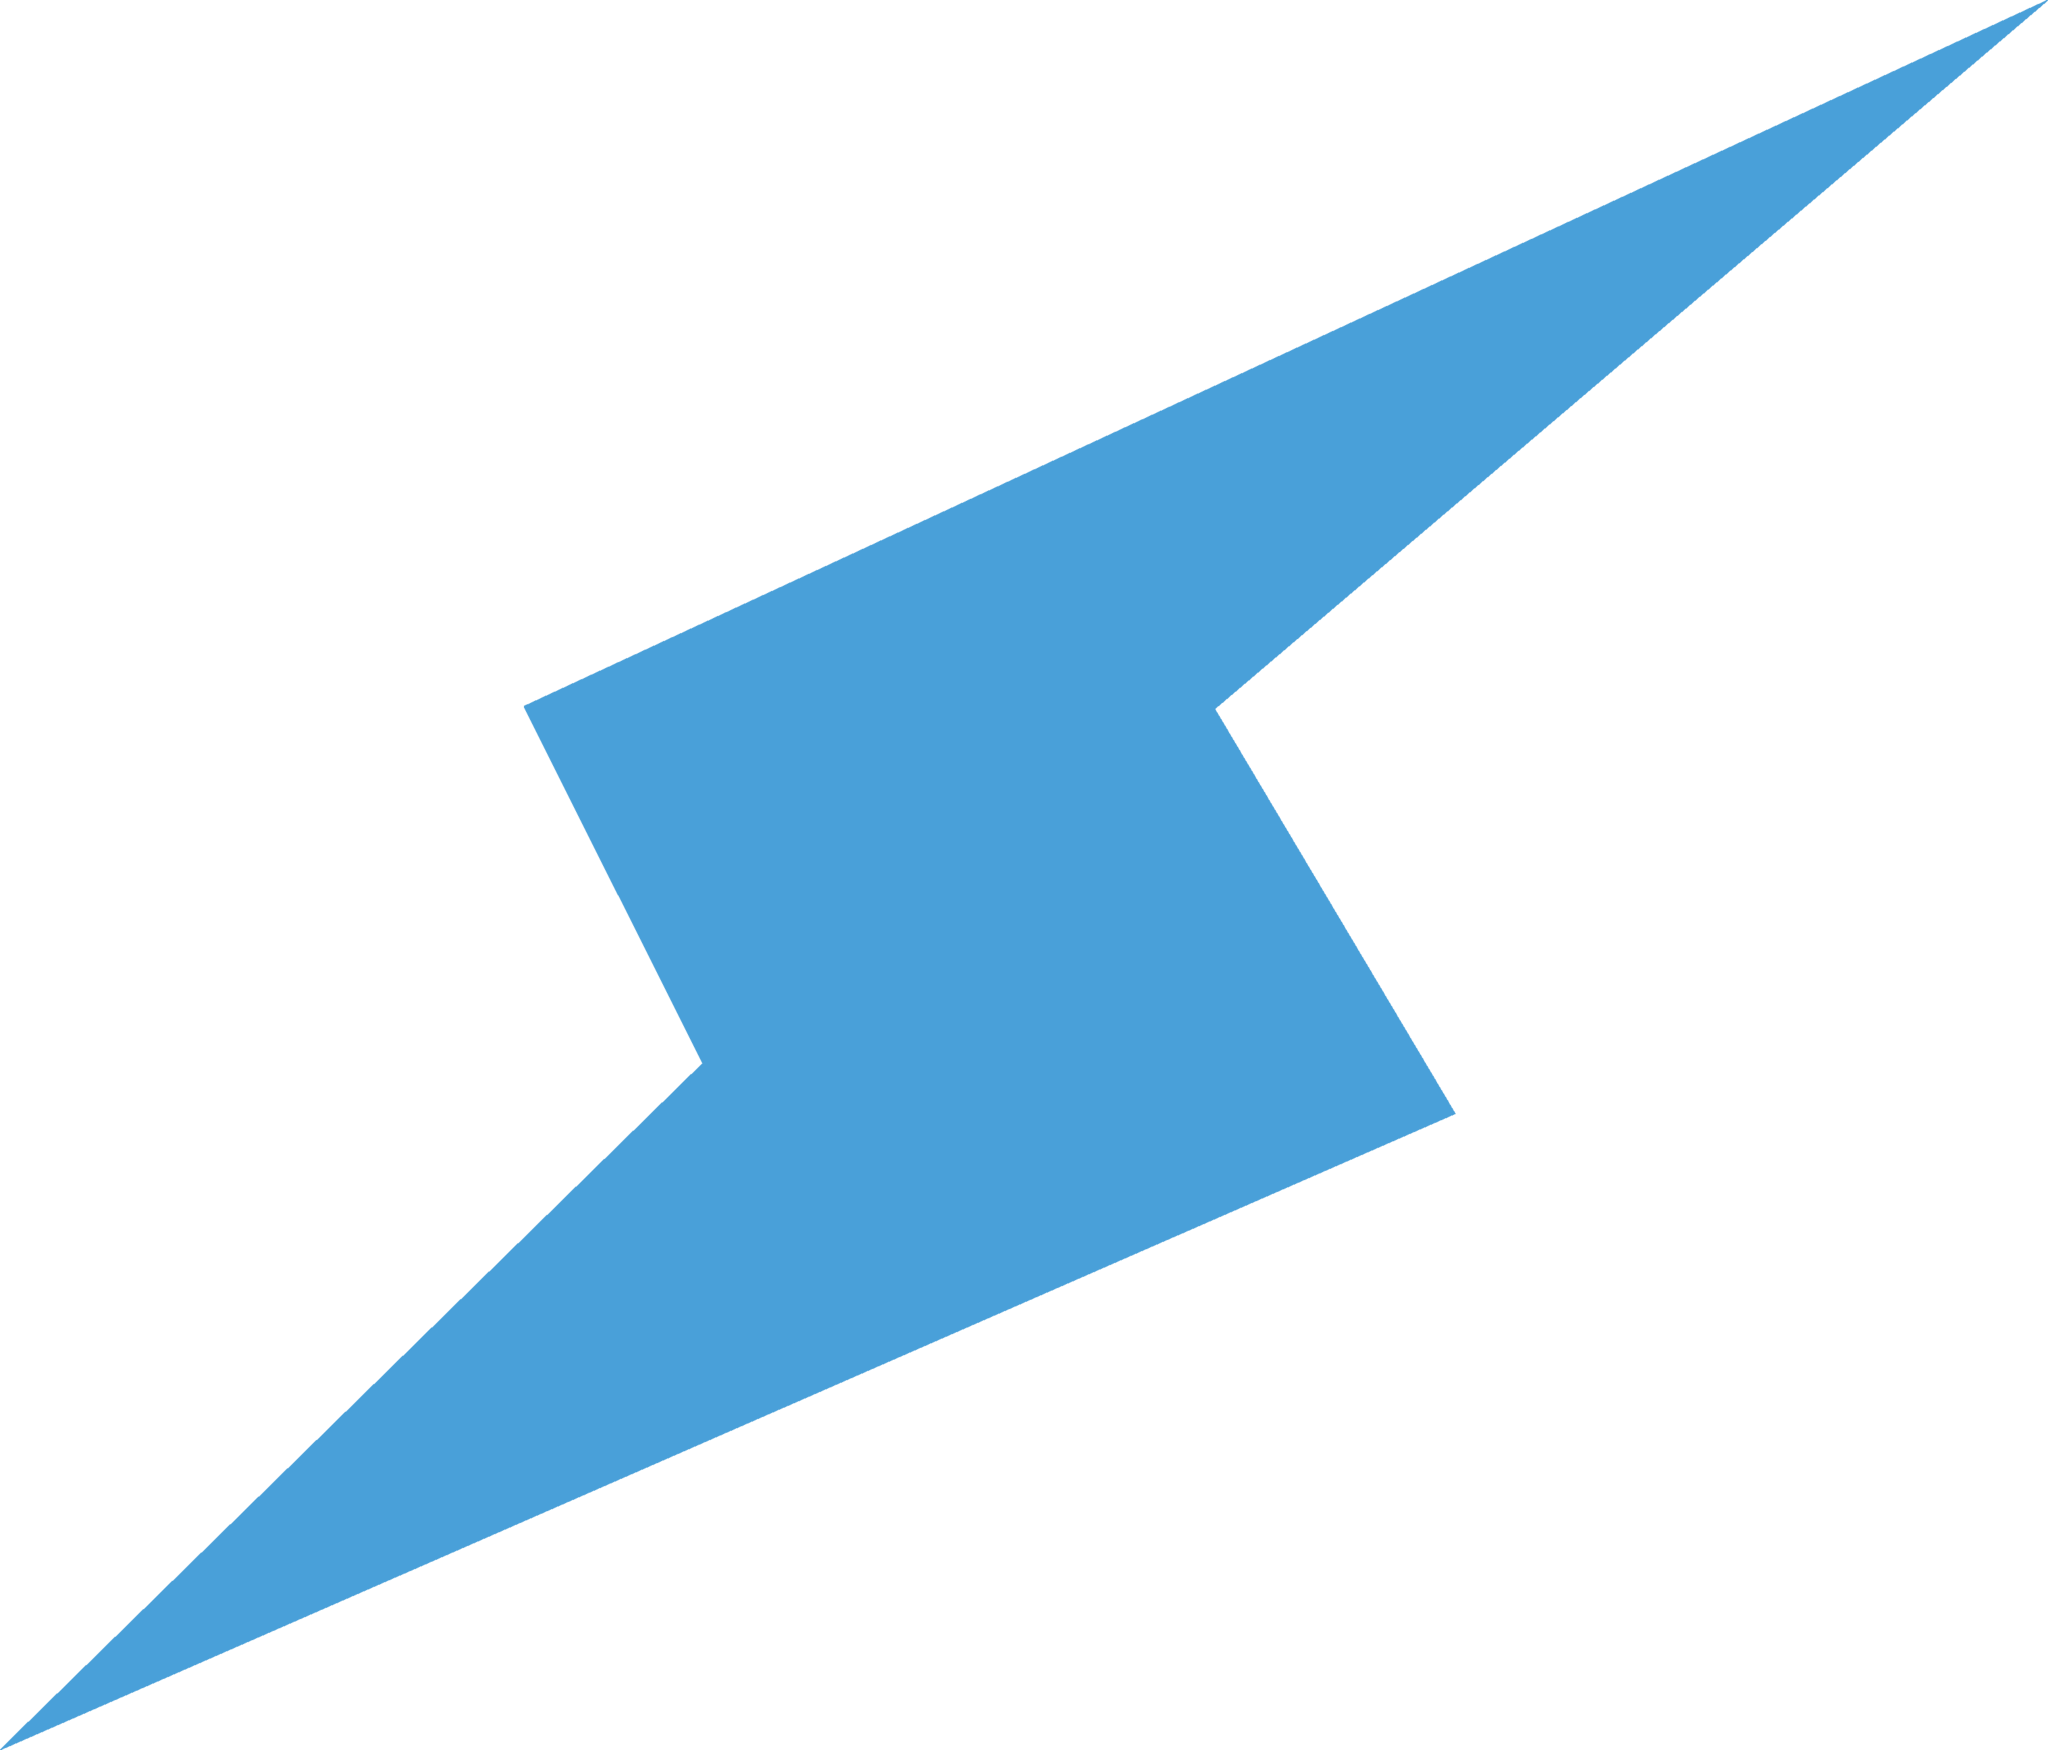 File Screwattack Blue Bolt Png Wikimedia Commons